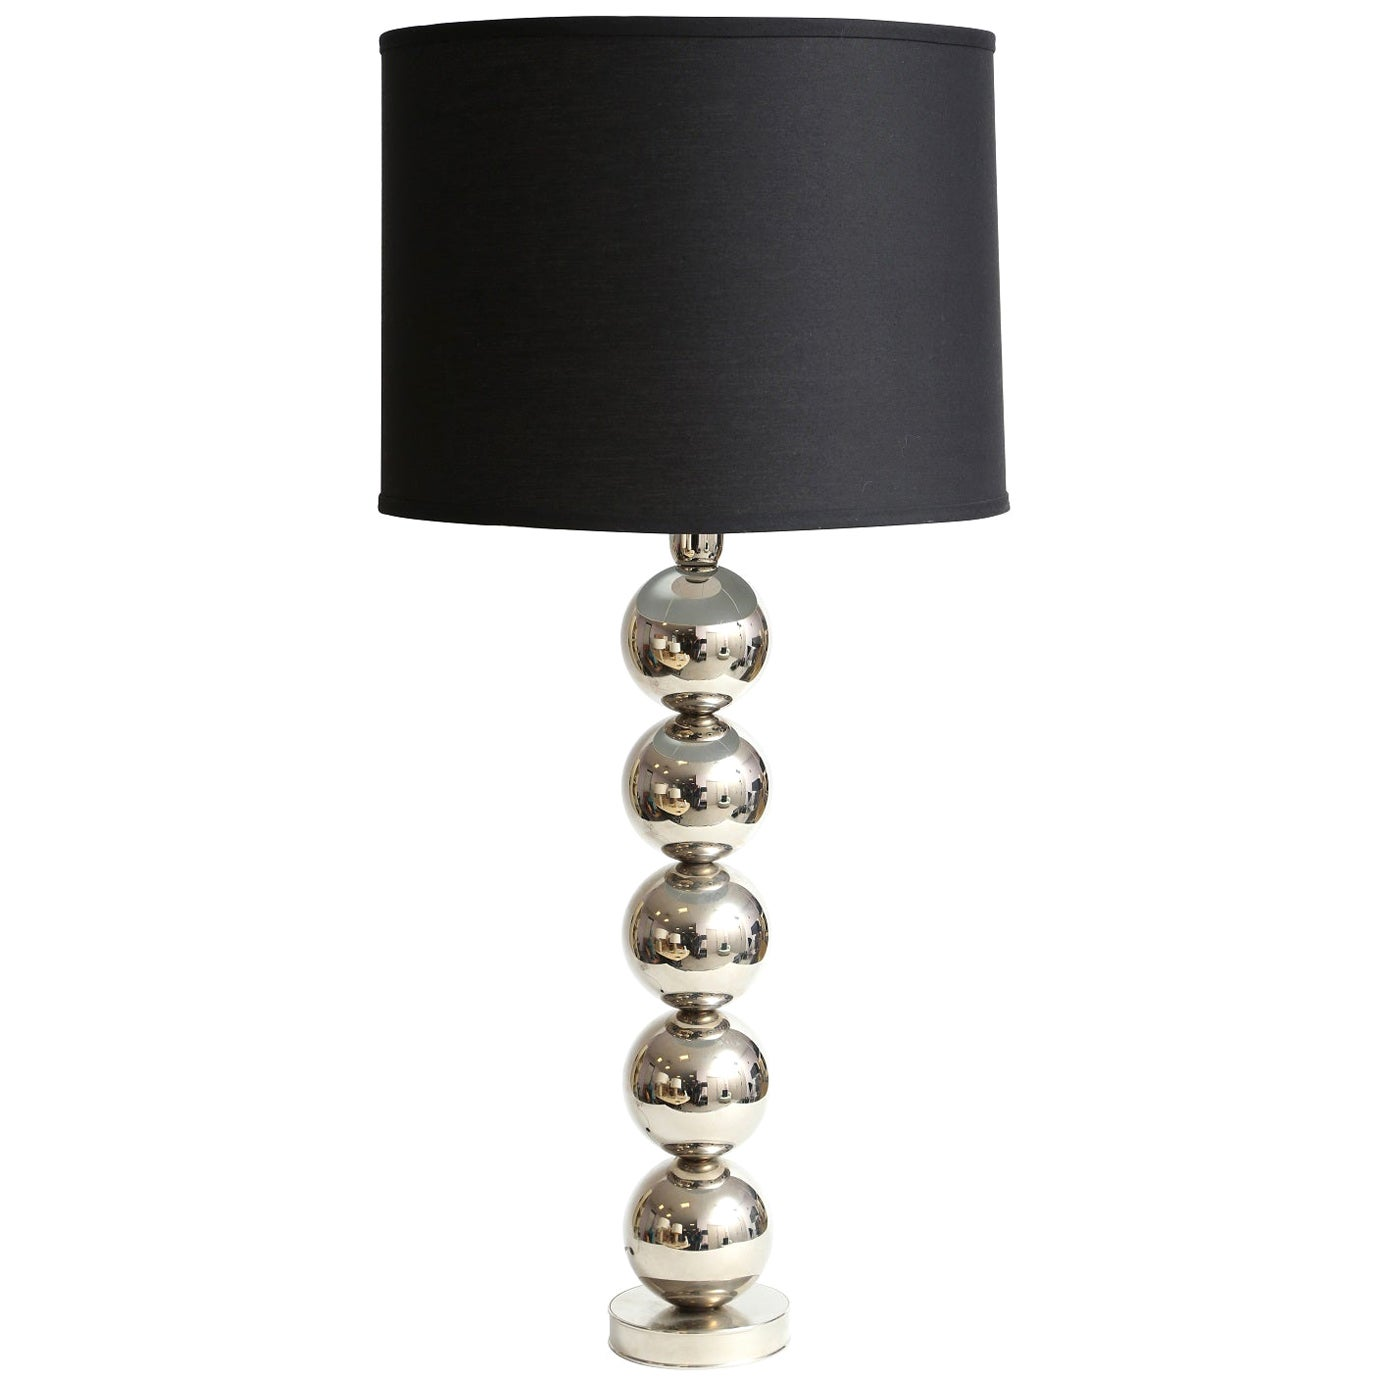 Pianeti Table Lamp by Riviere Italy, Made in Italy